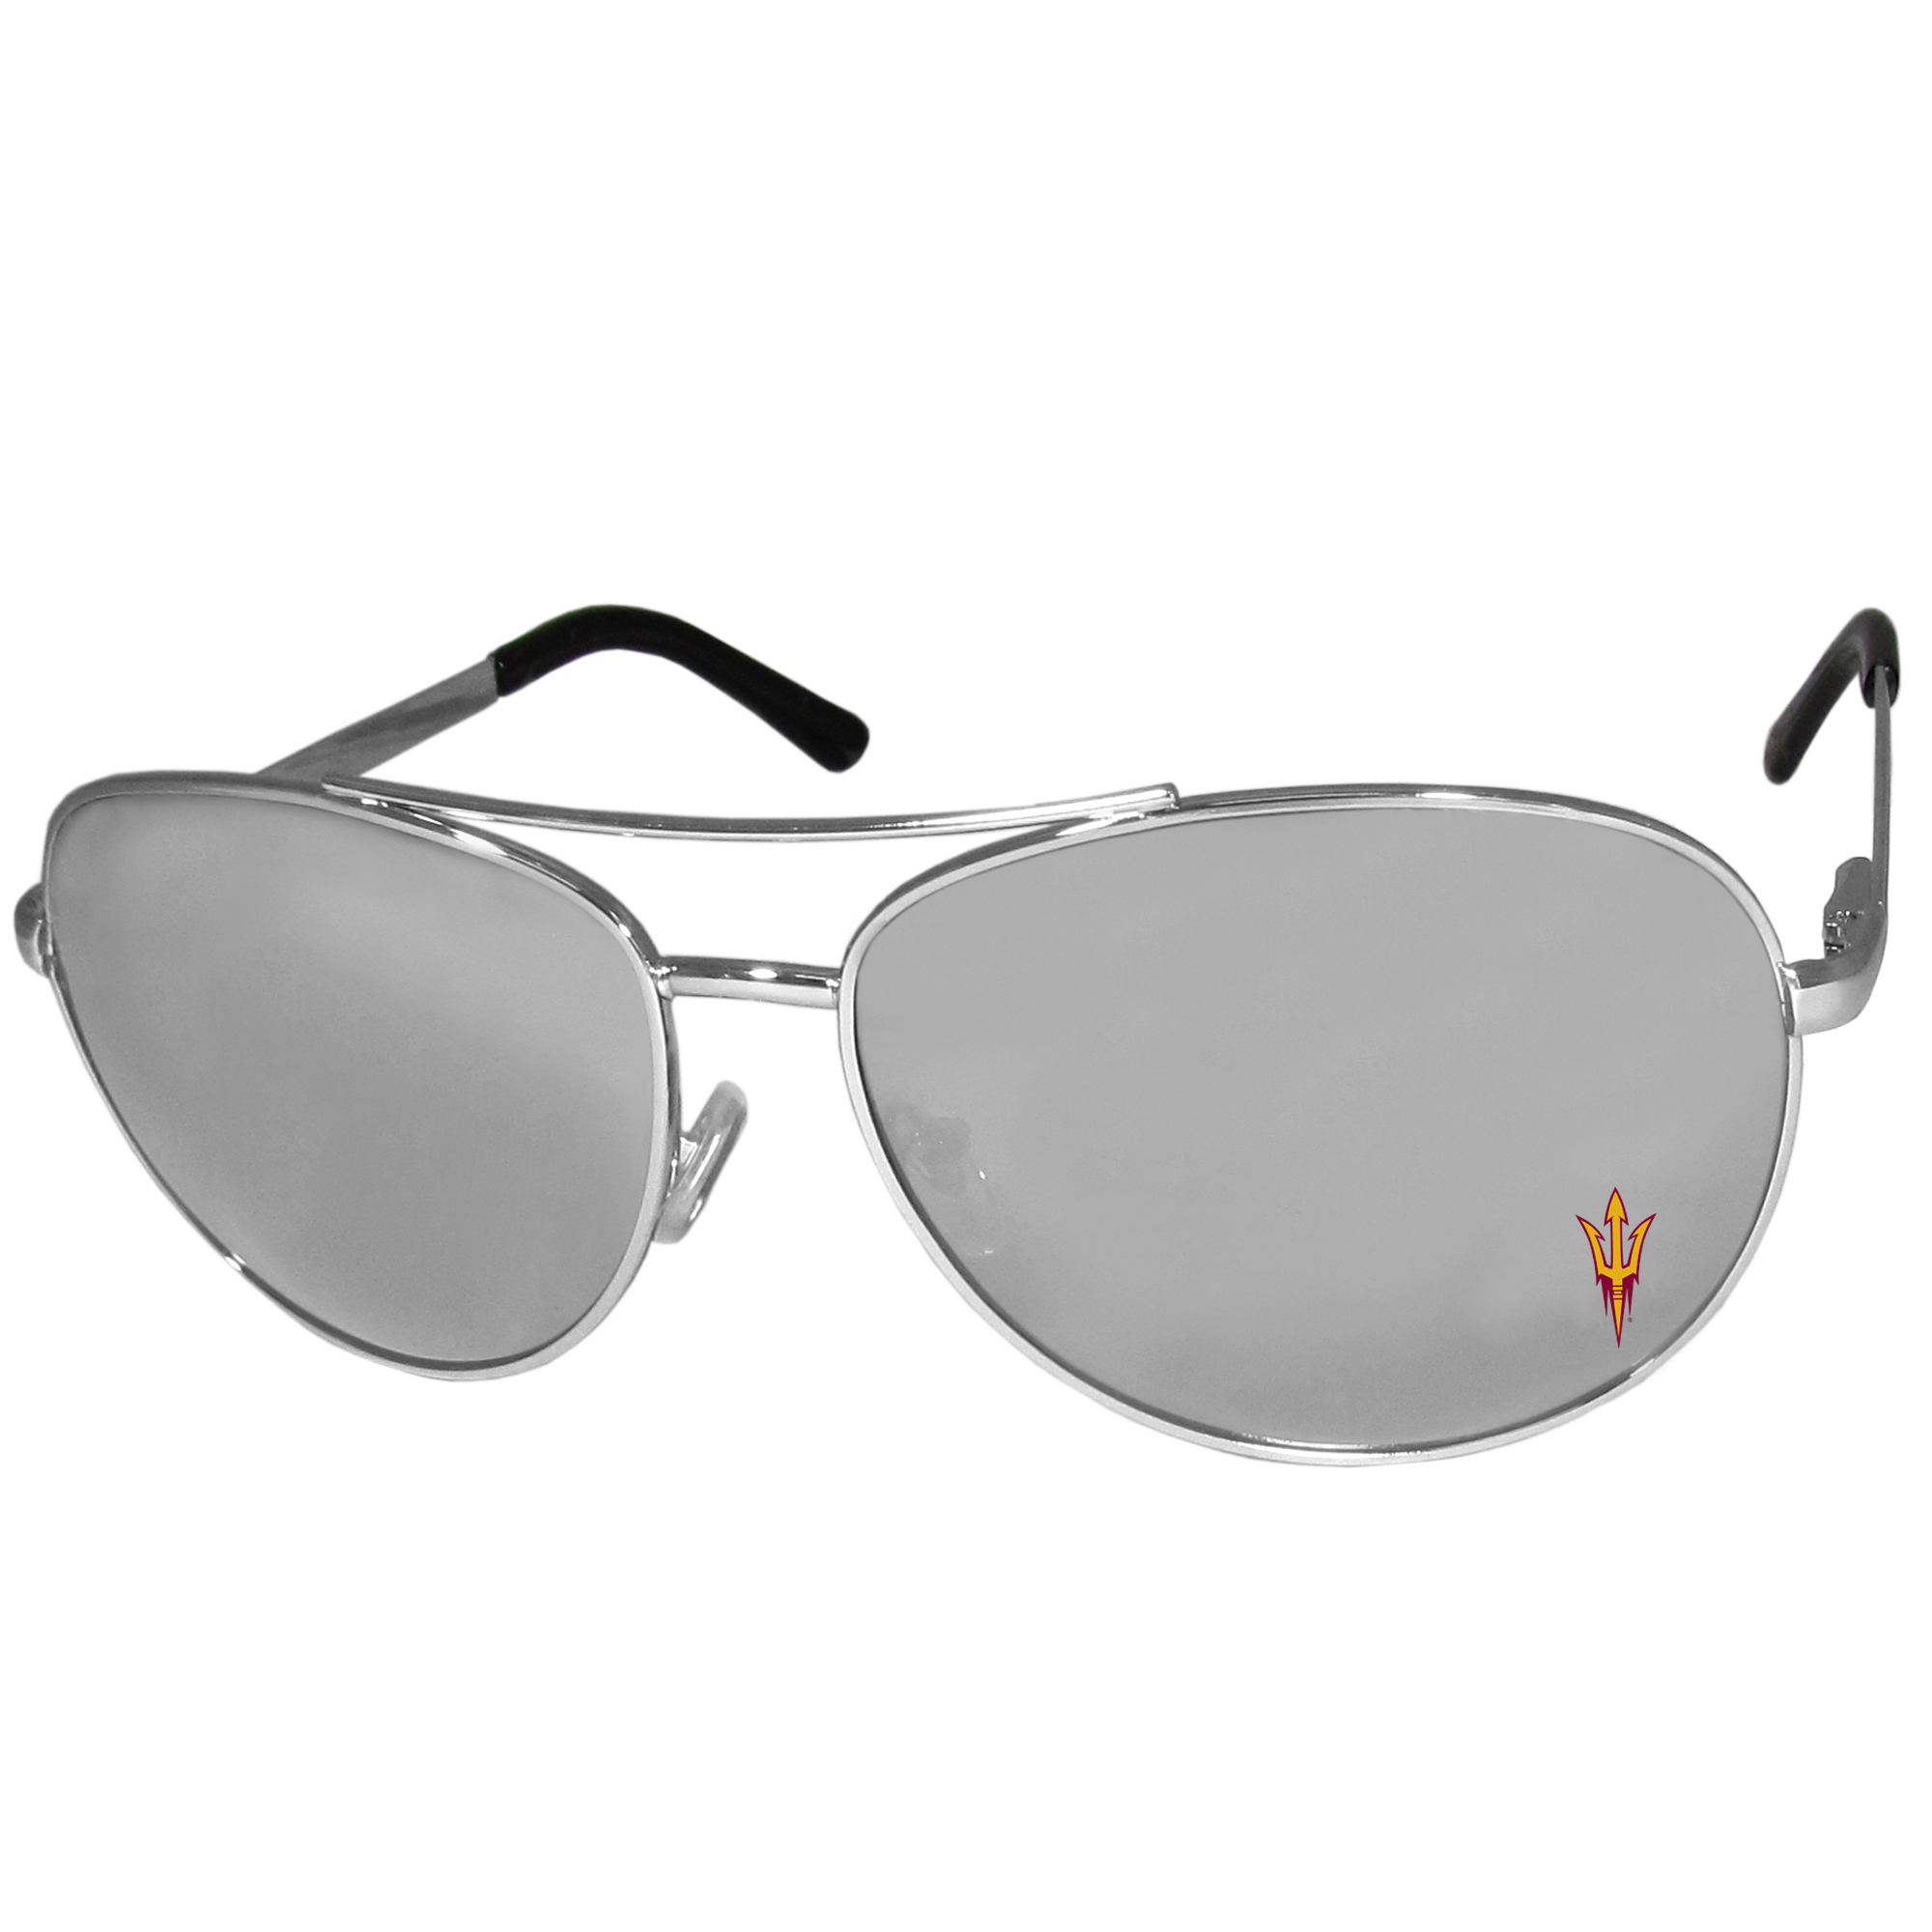 Arizona St. Sun Devils Aviator Sunglasses - Our aviator sunglasses have the iconic aviator style with mirrored lenses and metal frames. The glasses feature a silk screened Arizona St. Sun Devils logo in the corner of the lense. 100% UVA/UVB protection.